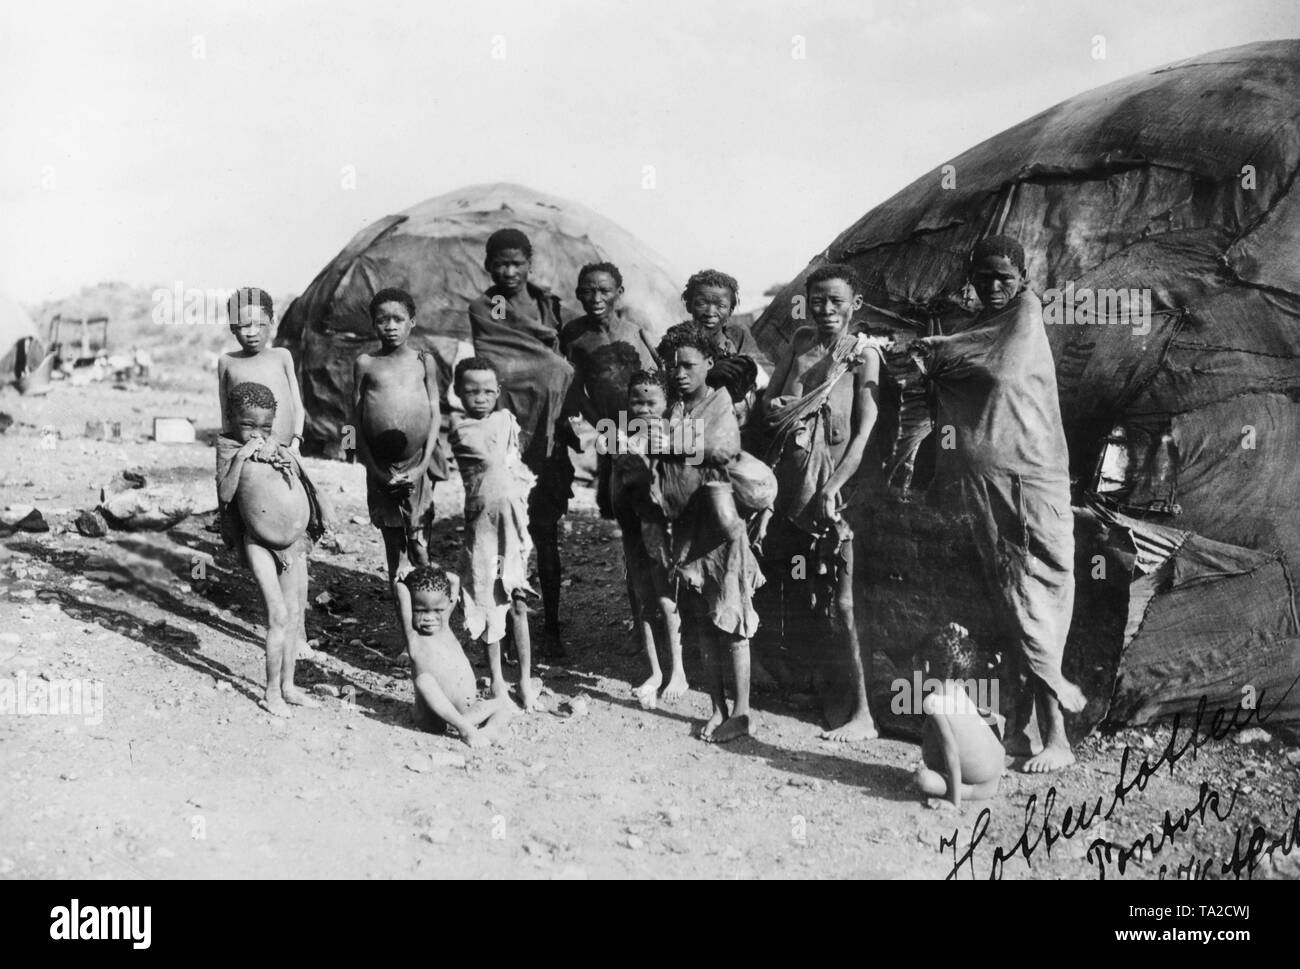 Children of Hottentots of different ages are partially wrapped in thin blankets in front of a pondok in German Southwest Africa. Children and adults show signs of malnutrition like bloated stomach and are emaciated. The image is undated and bears a print date of 1939. - Stock Image